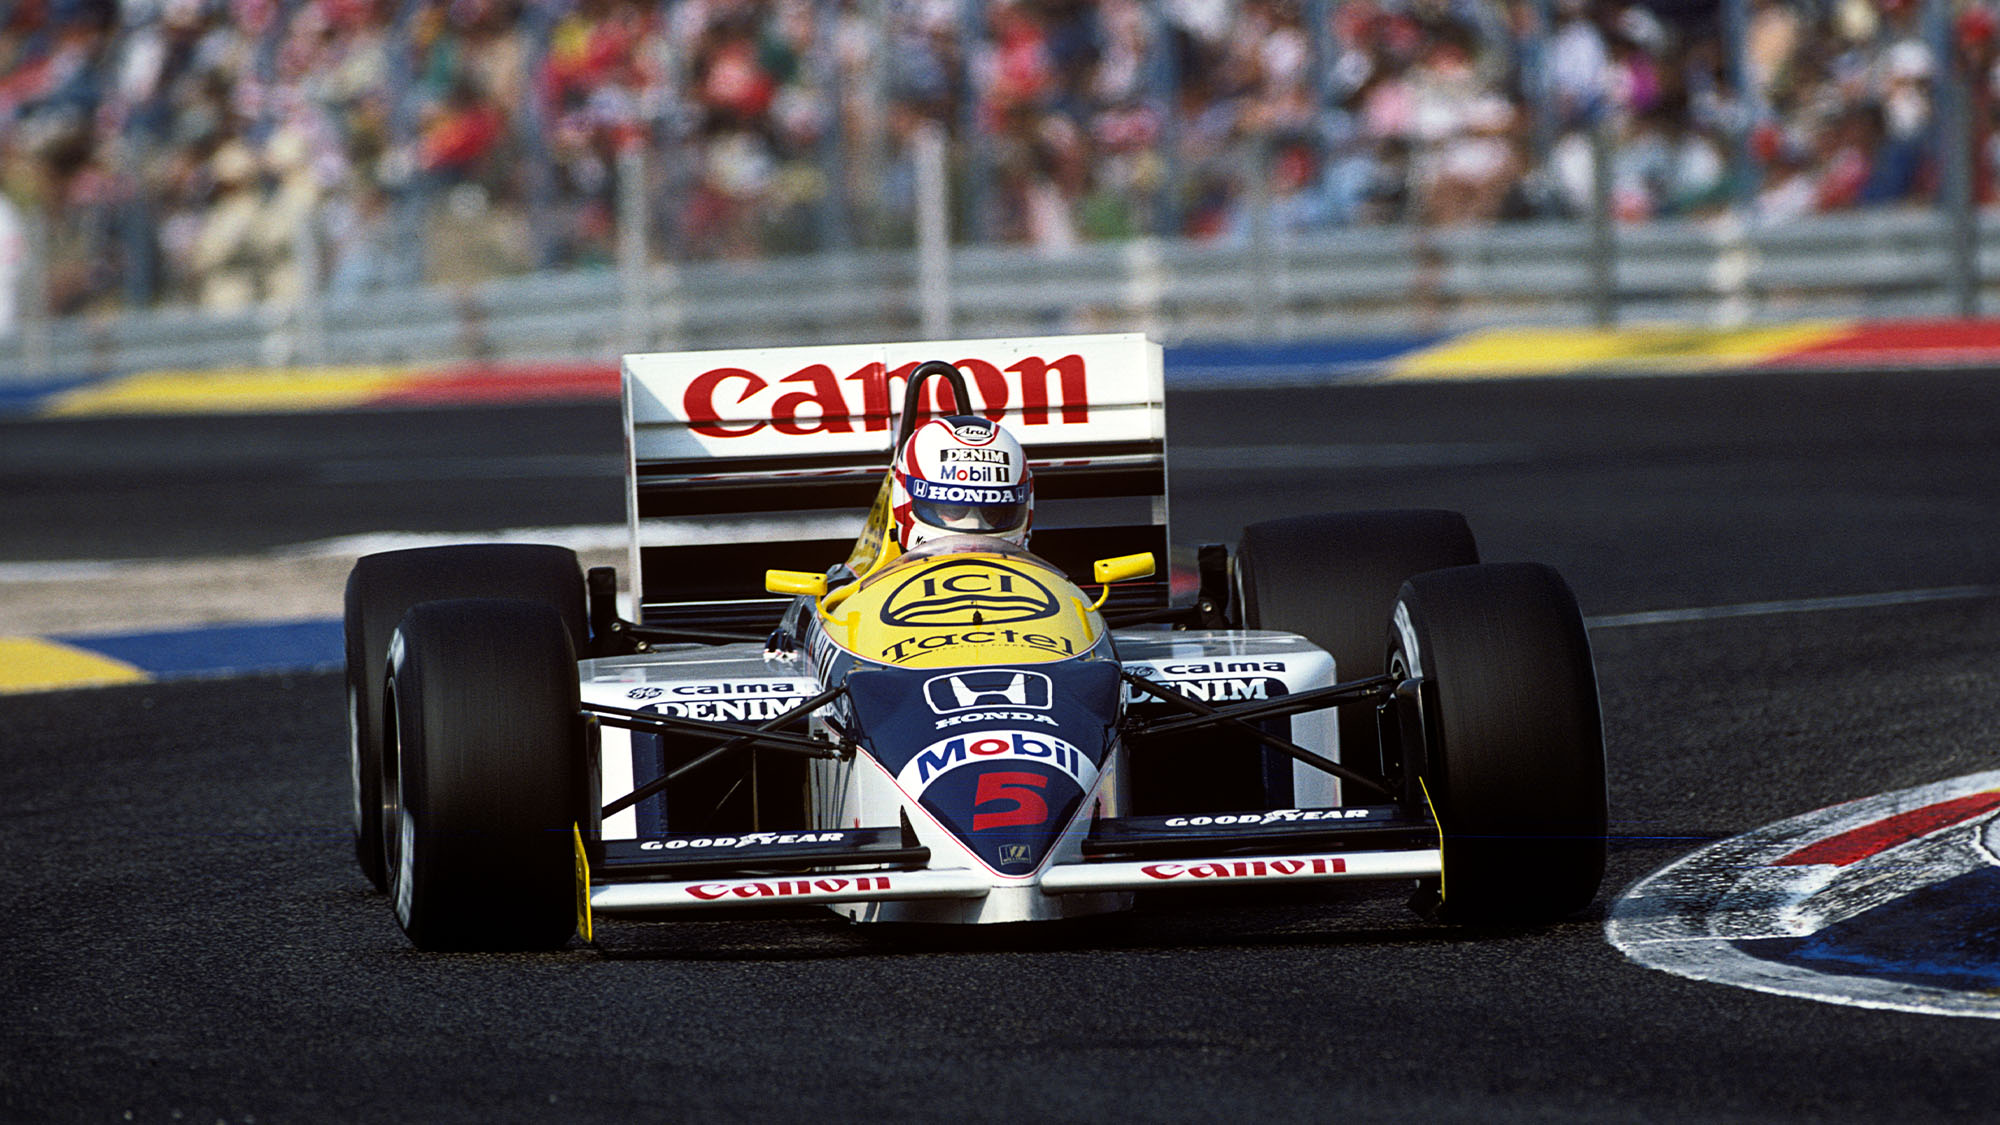 Nigel Mansell, Williams-Honda FW11, Grand Prix of France, Circuit Paul Ricard, 06 July 1986. (Photo by Paul-Henri Cahier/Getty Images)